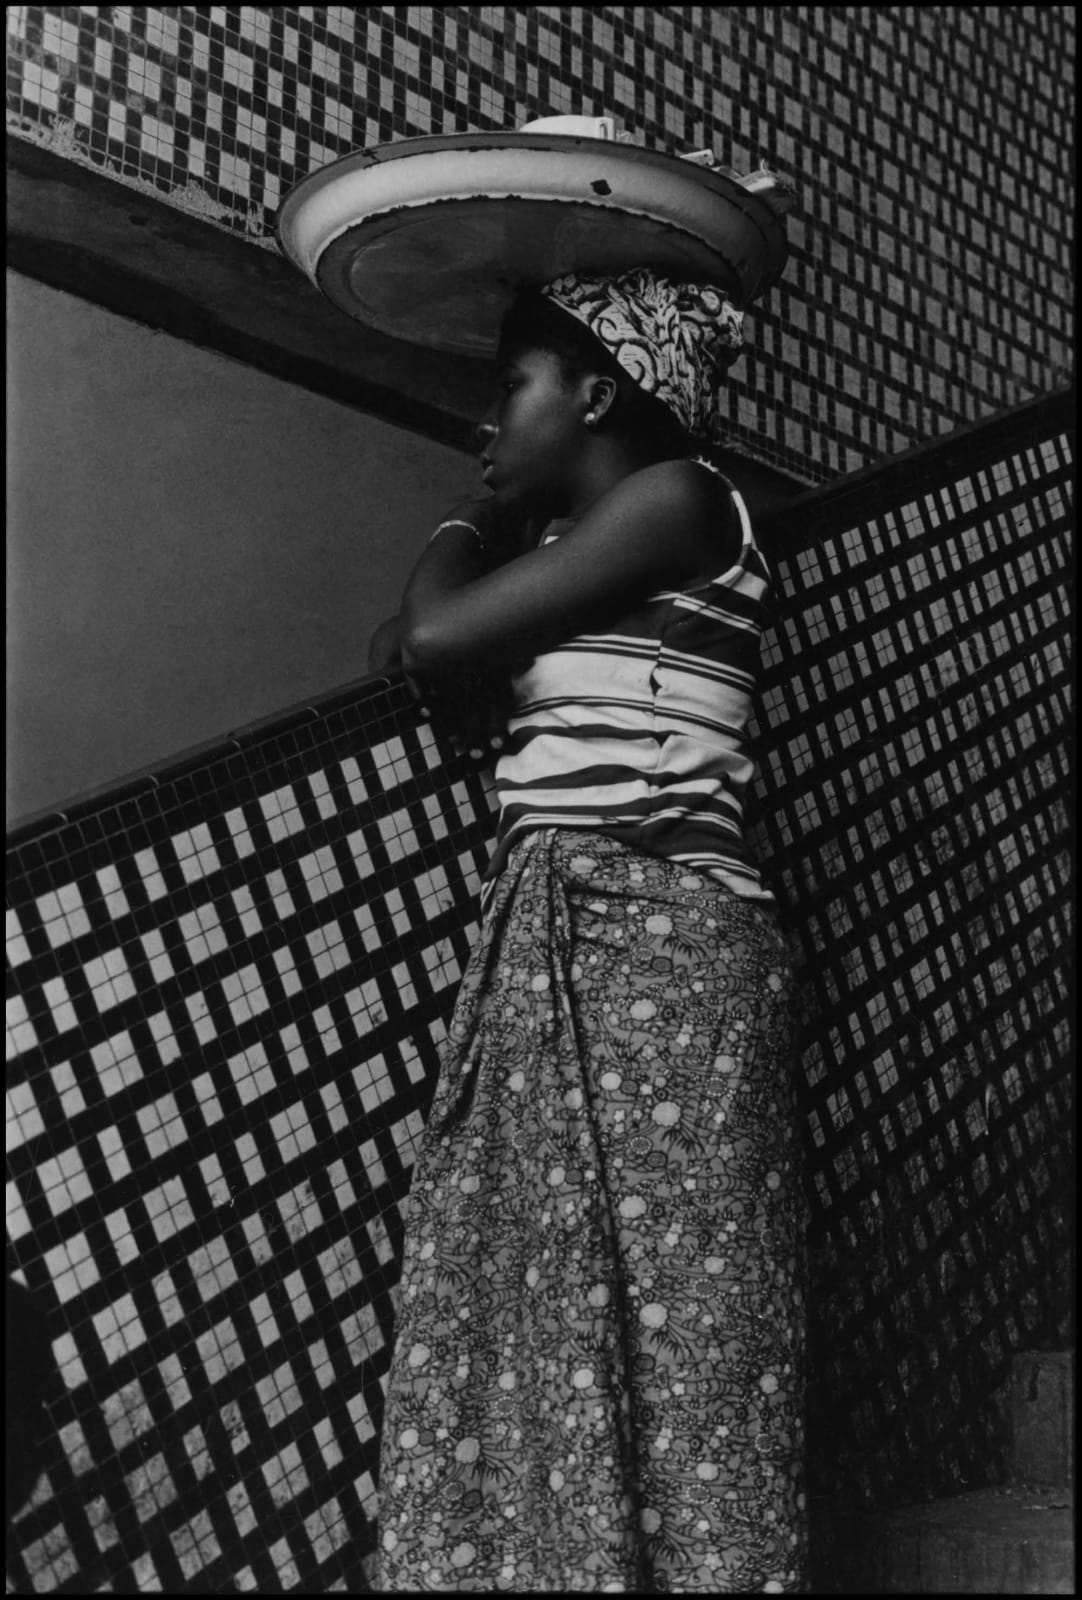 Ming Smith, Symmetry on the Ivory Coast, Abidjan, Ivory Coast, 1972